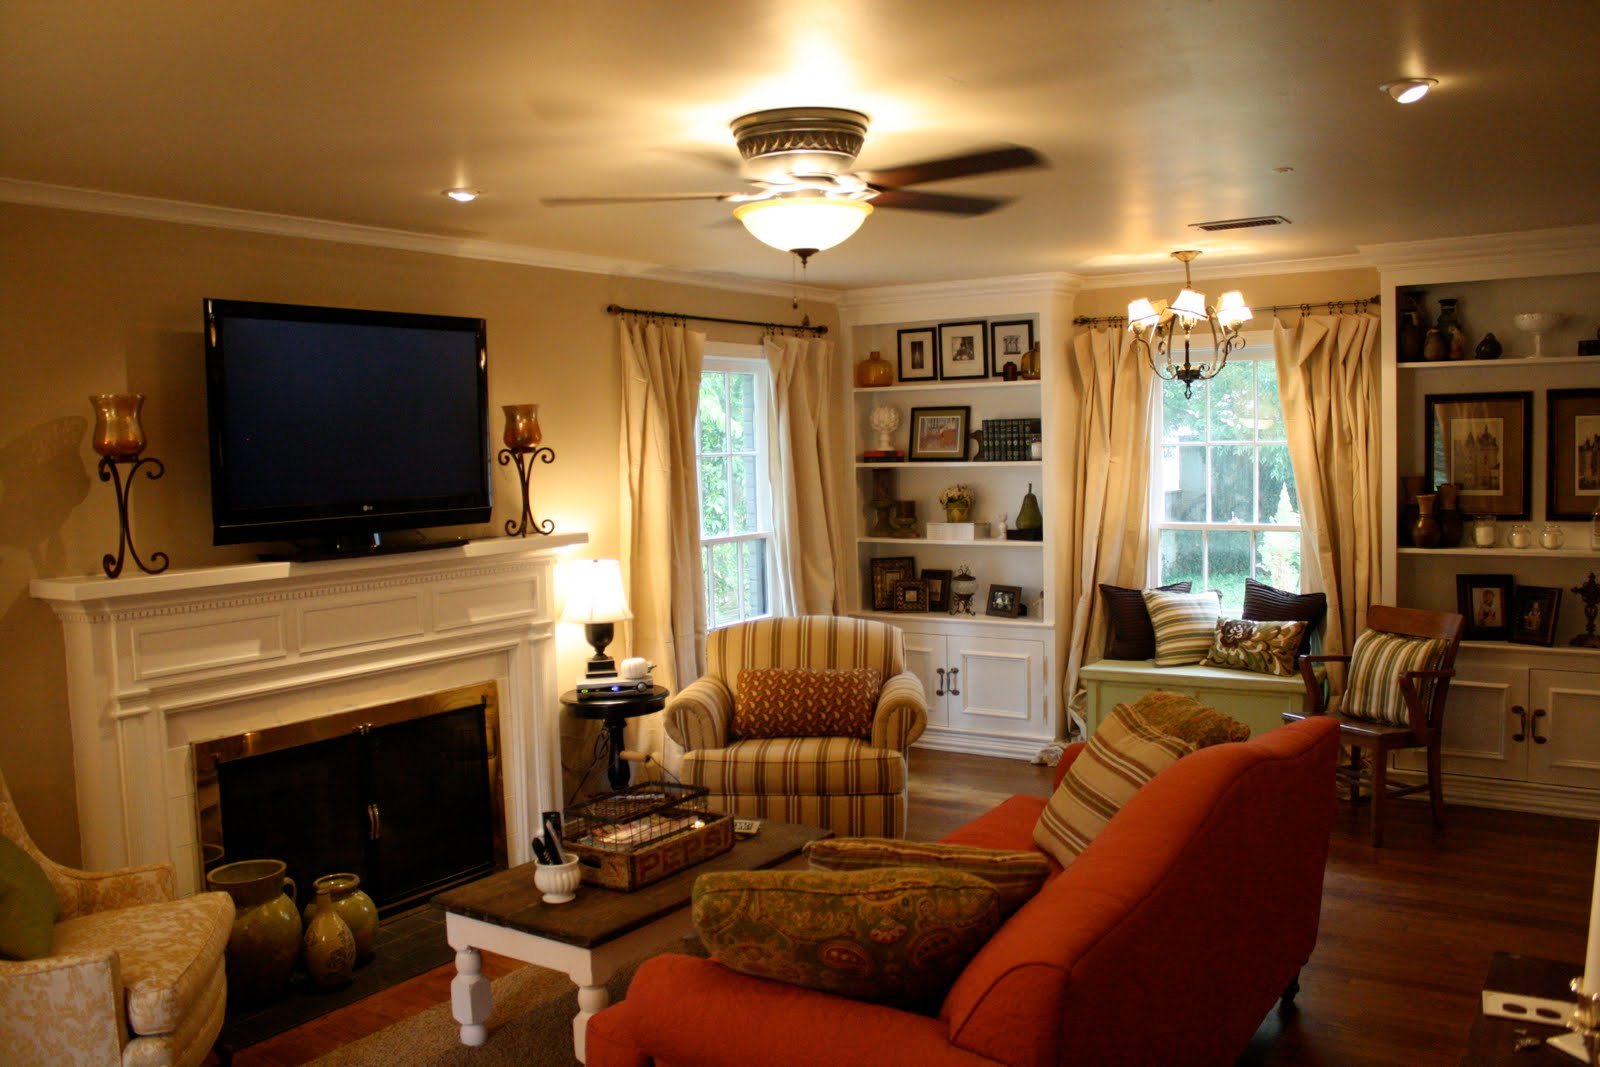 Remodelaholic | Updated Living Room From Italian To ...